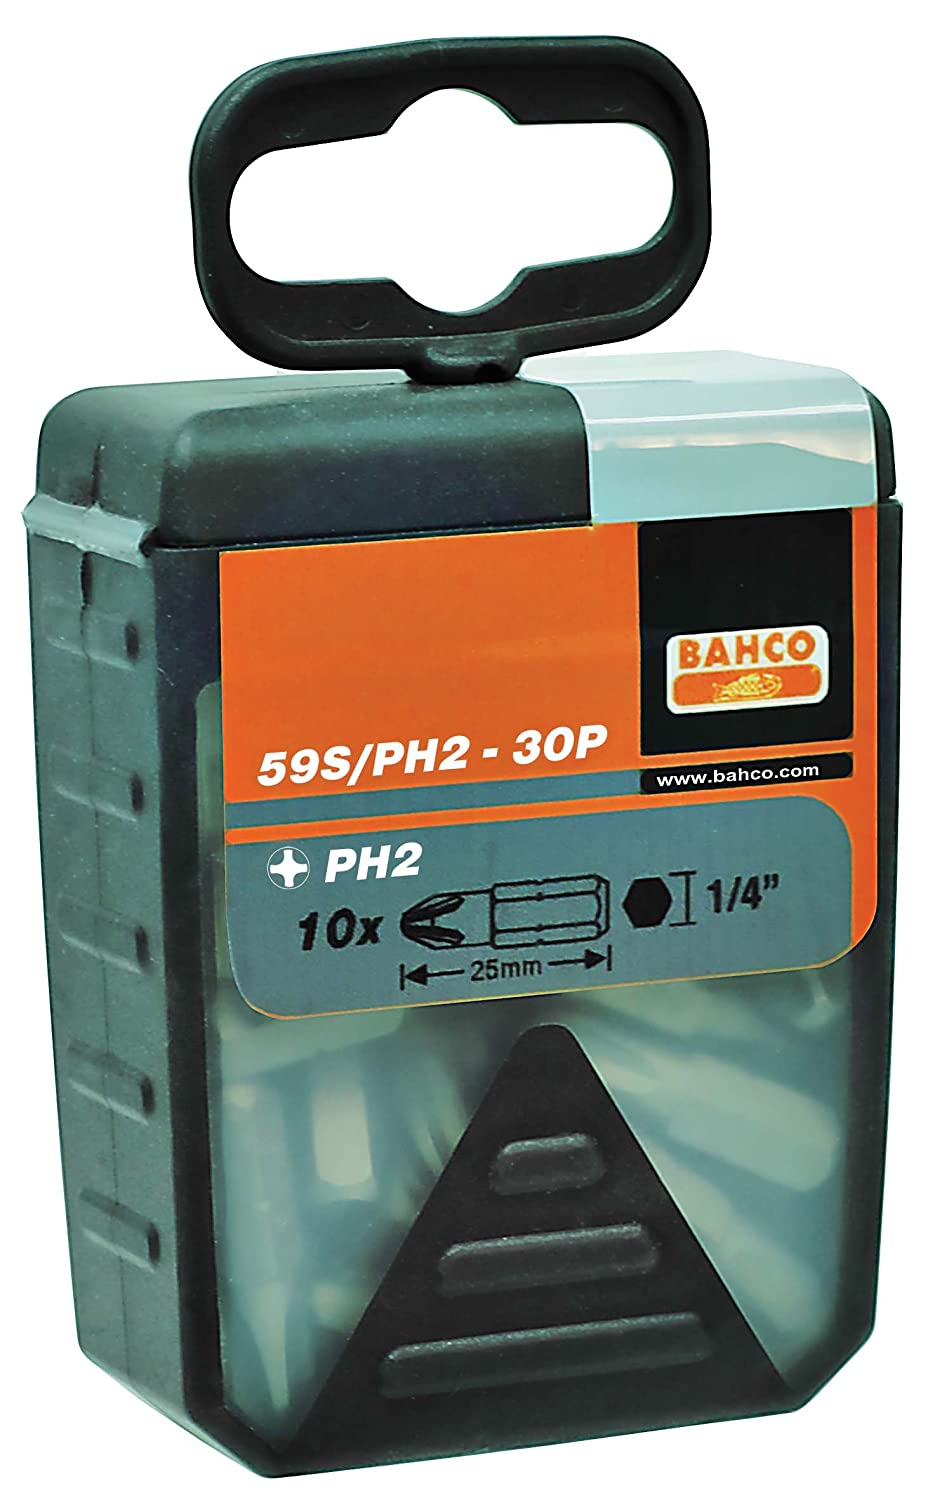 Bahco 59S/PH2-30P - 30 Embouts Ph2 25Mm 1/4